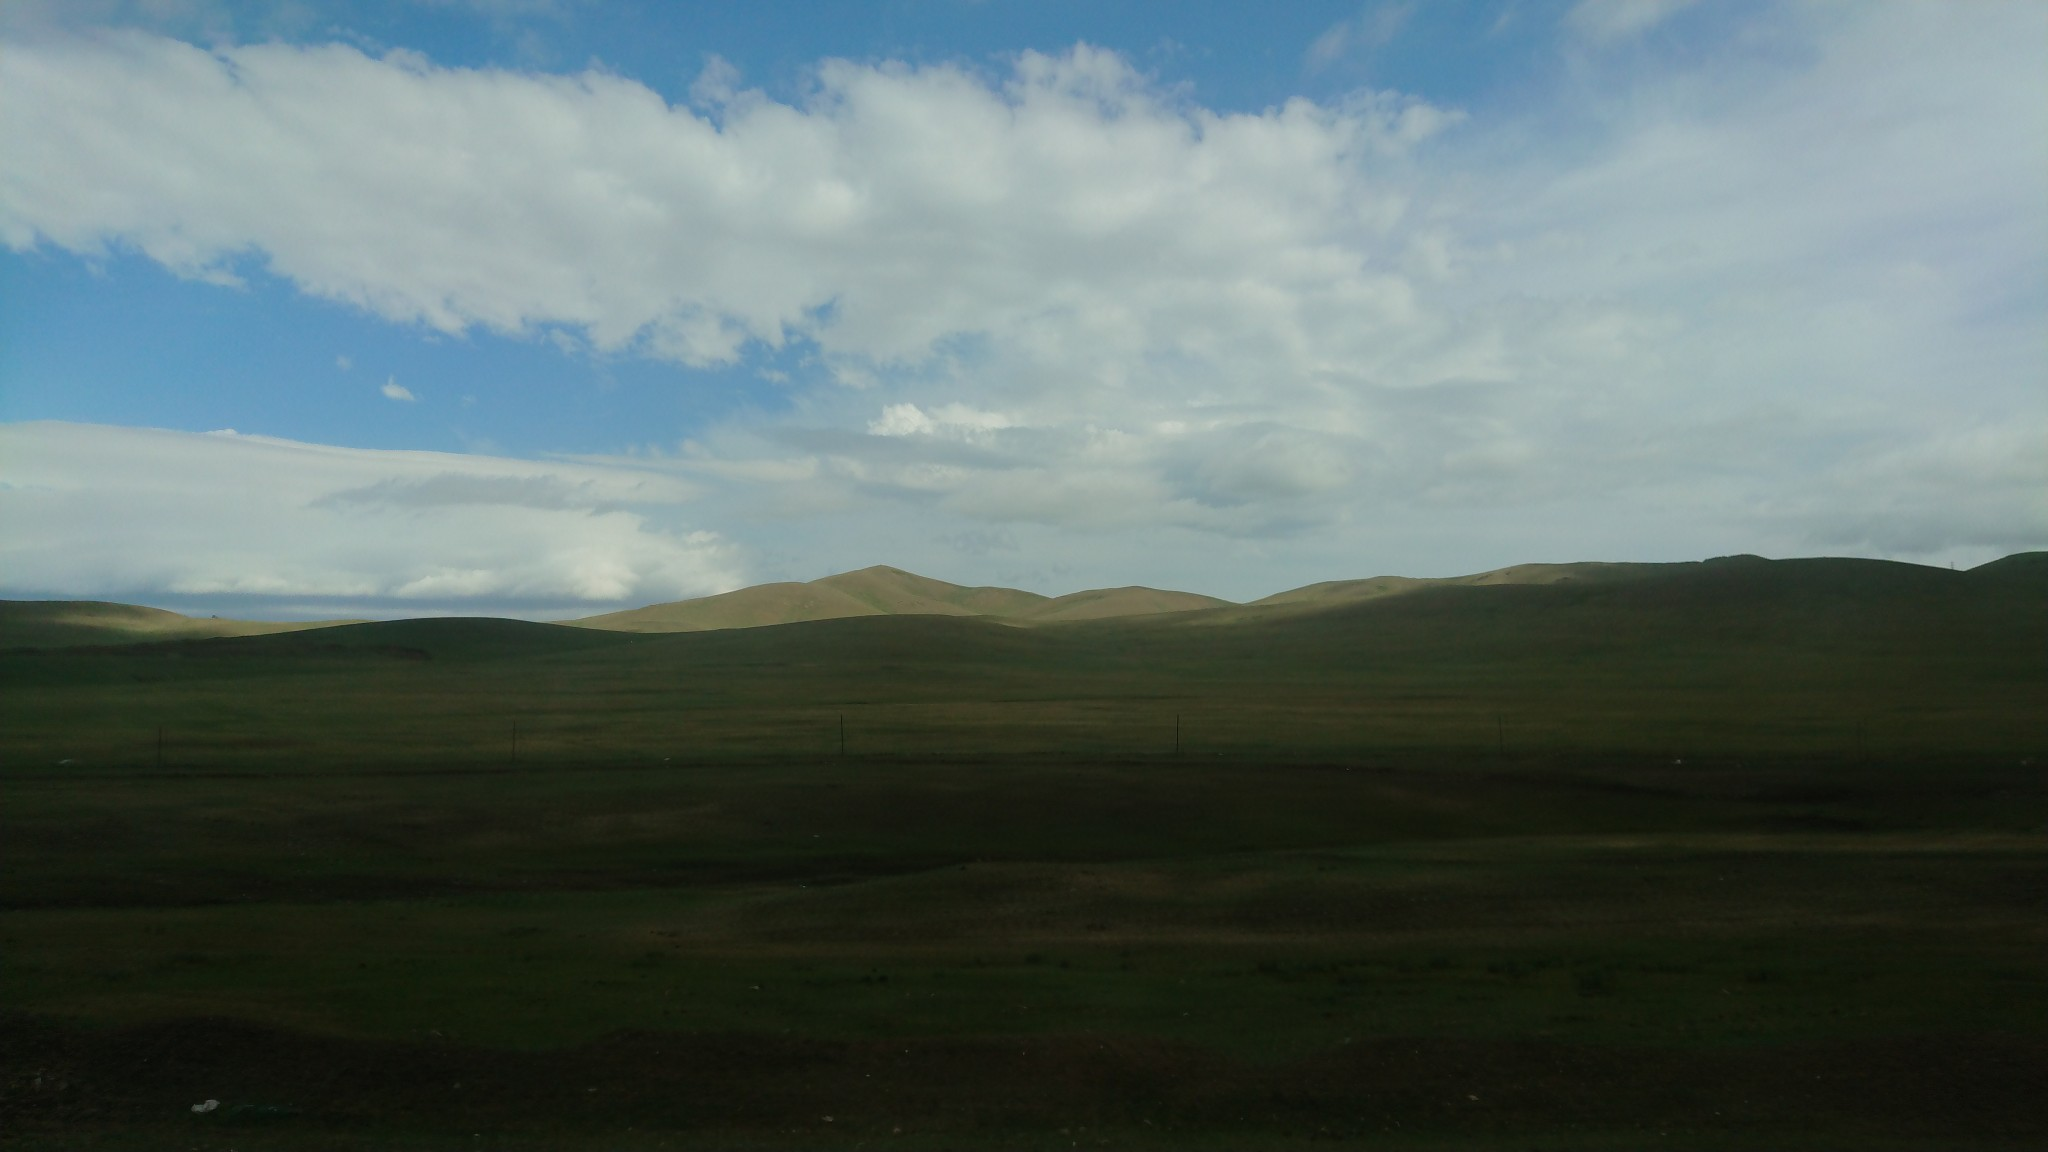 Mongolie49